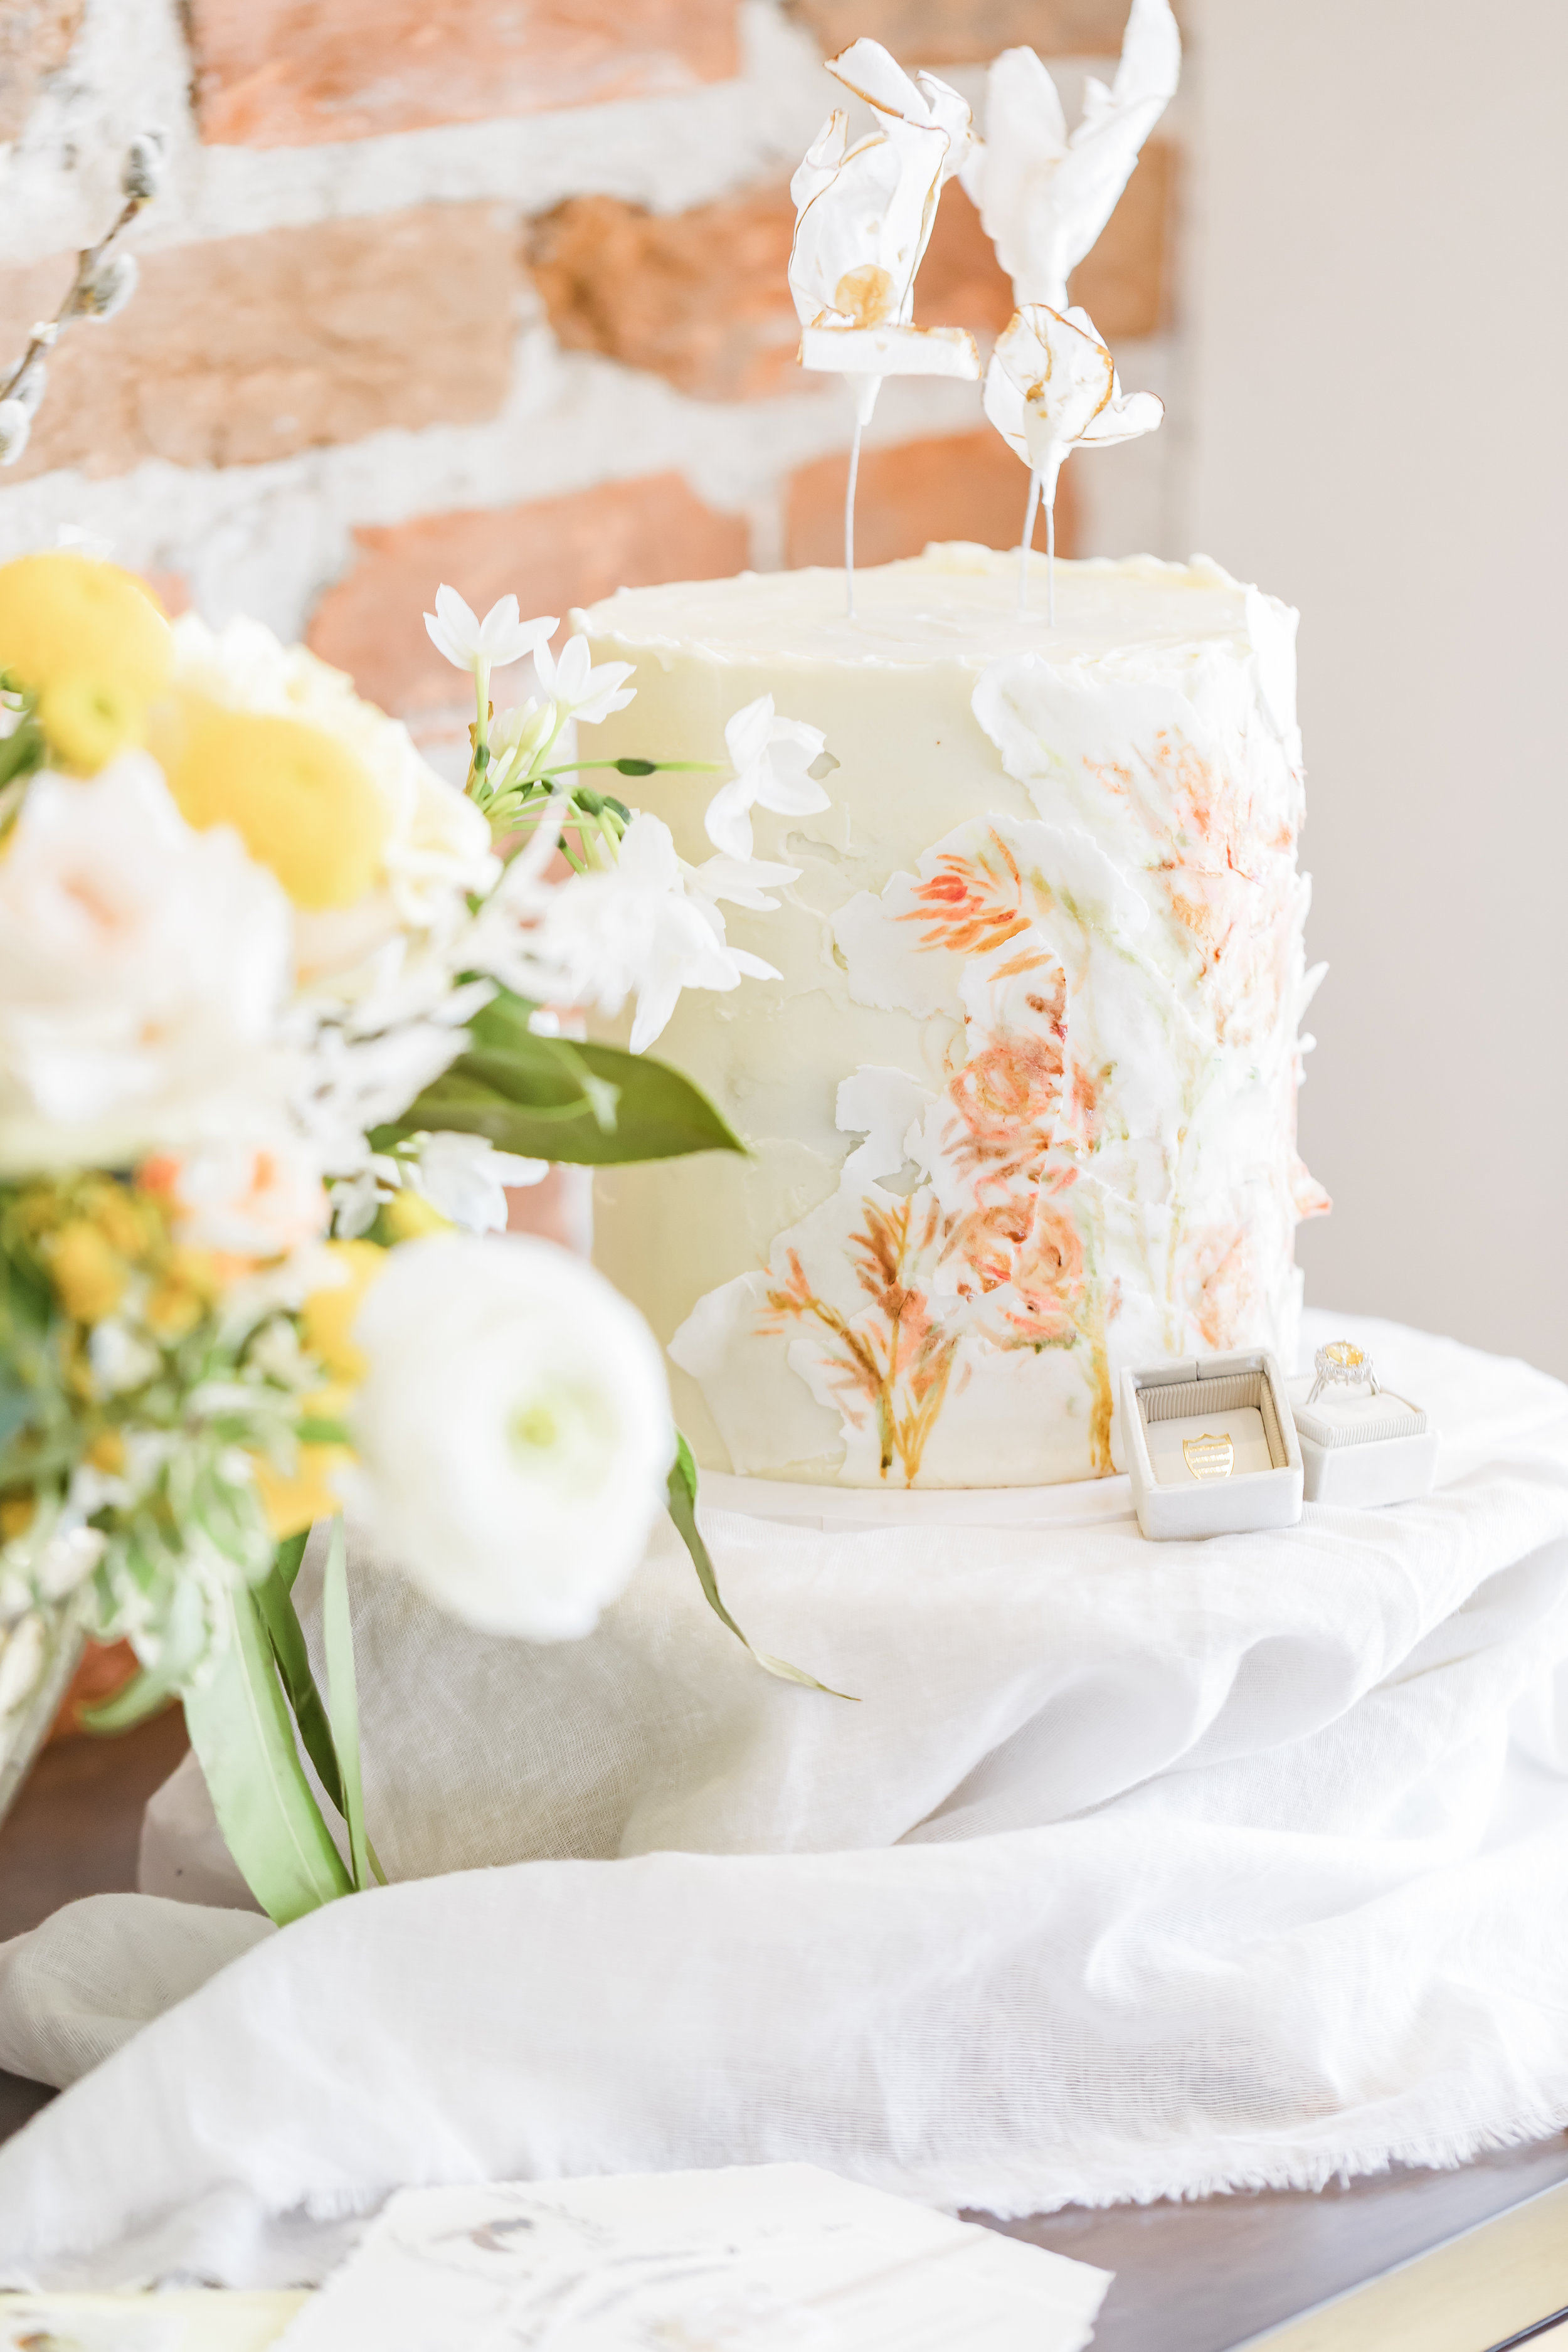 Collaboration between:Melissa Vargas PhotographyRebel Pioneer BakeryHaven FloralsThe Elm EstateJalie EventsNancy Rice Artistry -